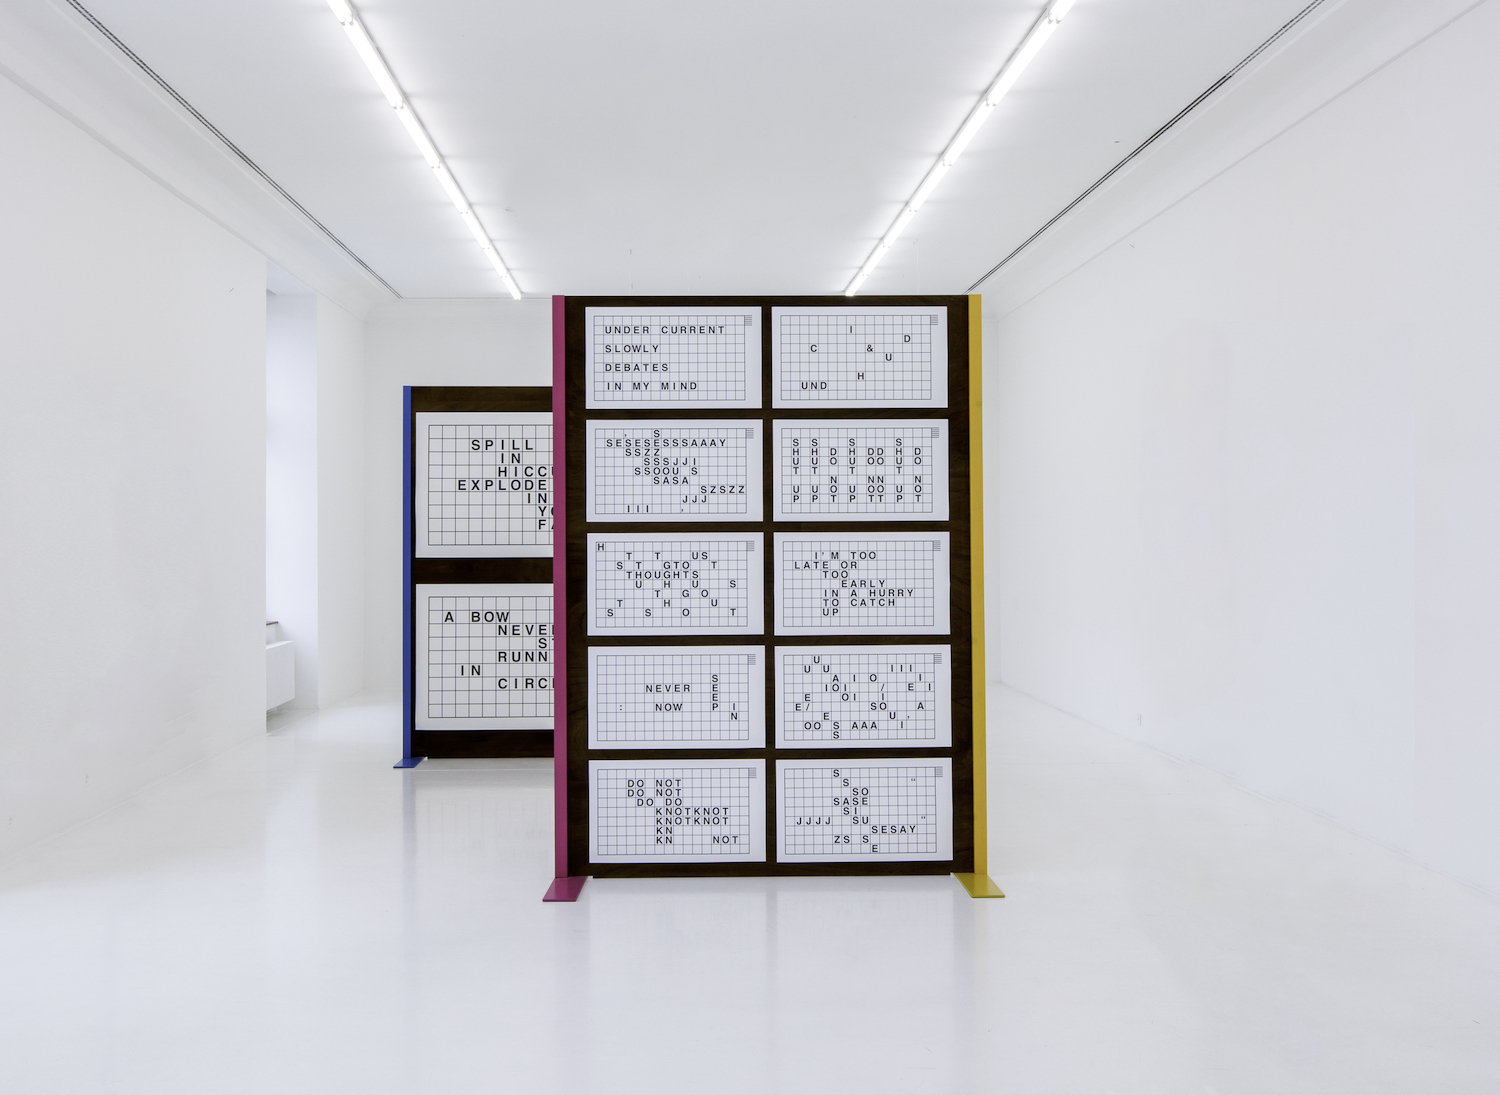 Nicole Bachmann, Grids, 2017. 34 laser prints on 200gsm matt paper. Dimensions variable (site-specific dimensions). Presented here: 109.5 x 188 cm / 50 x 86 cm. Installation view at Helmhaus Museum Zurich, CH.